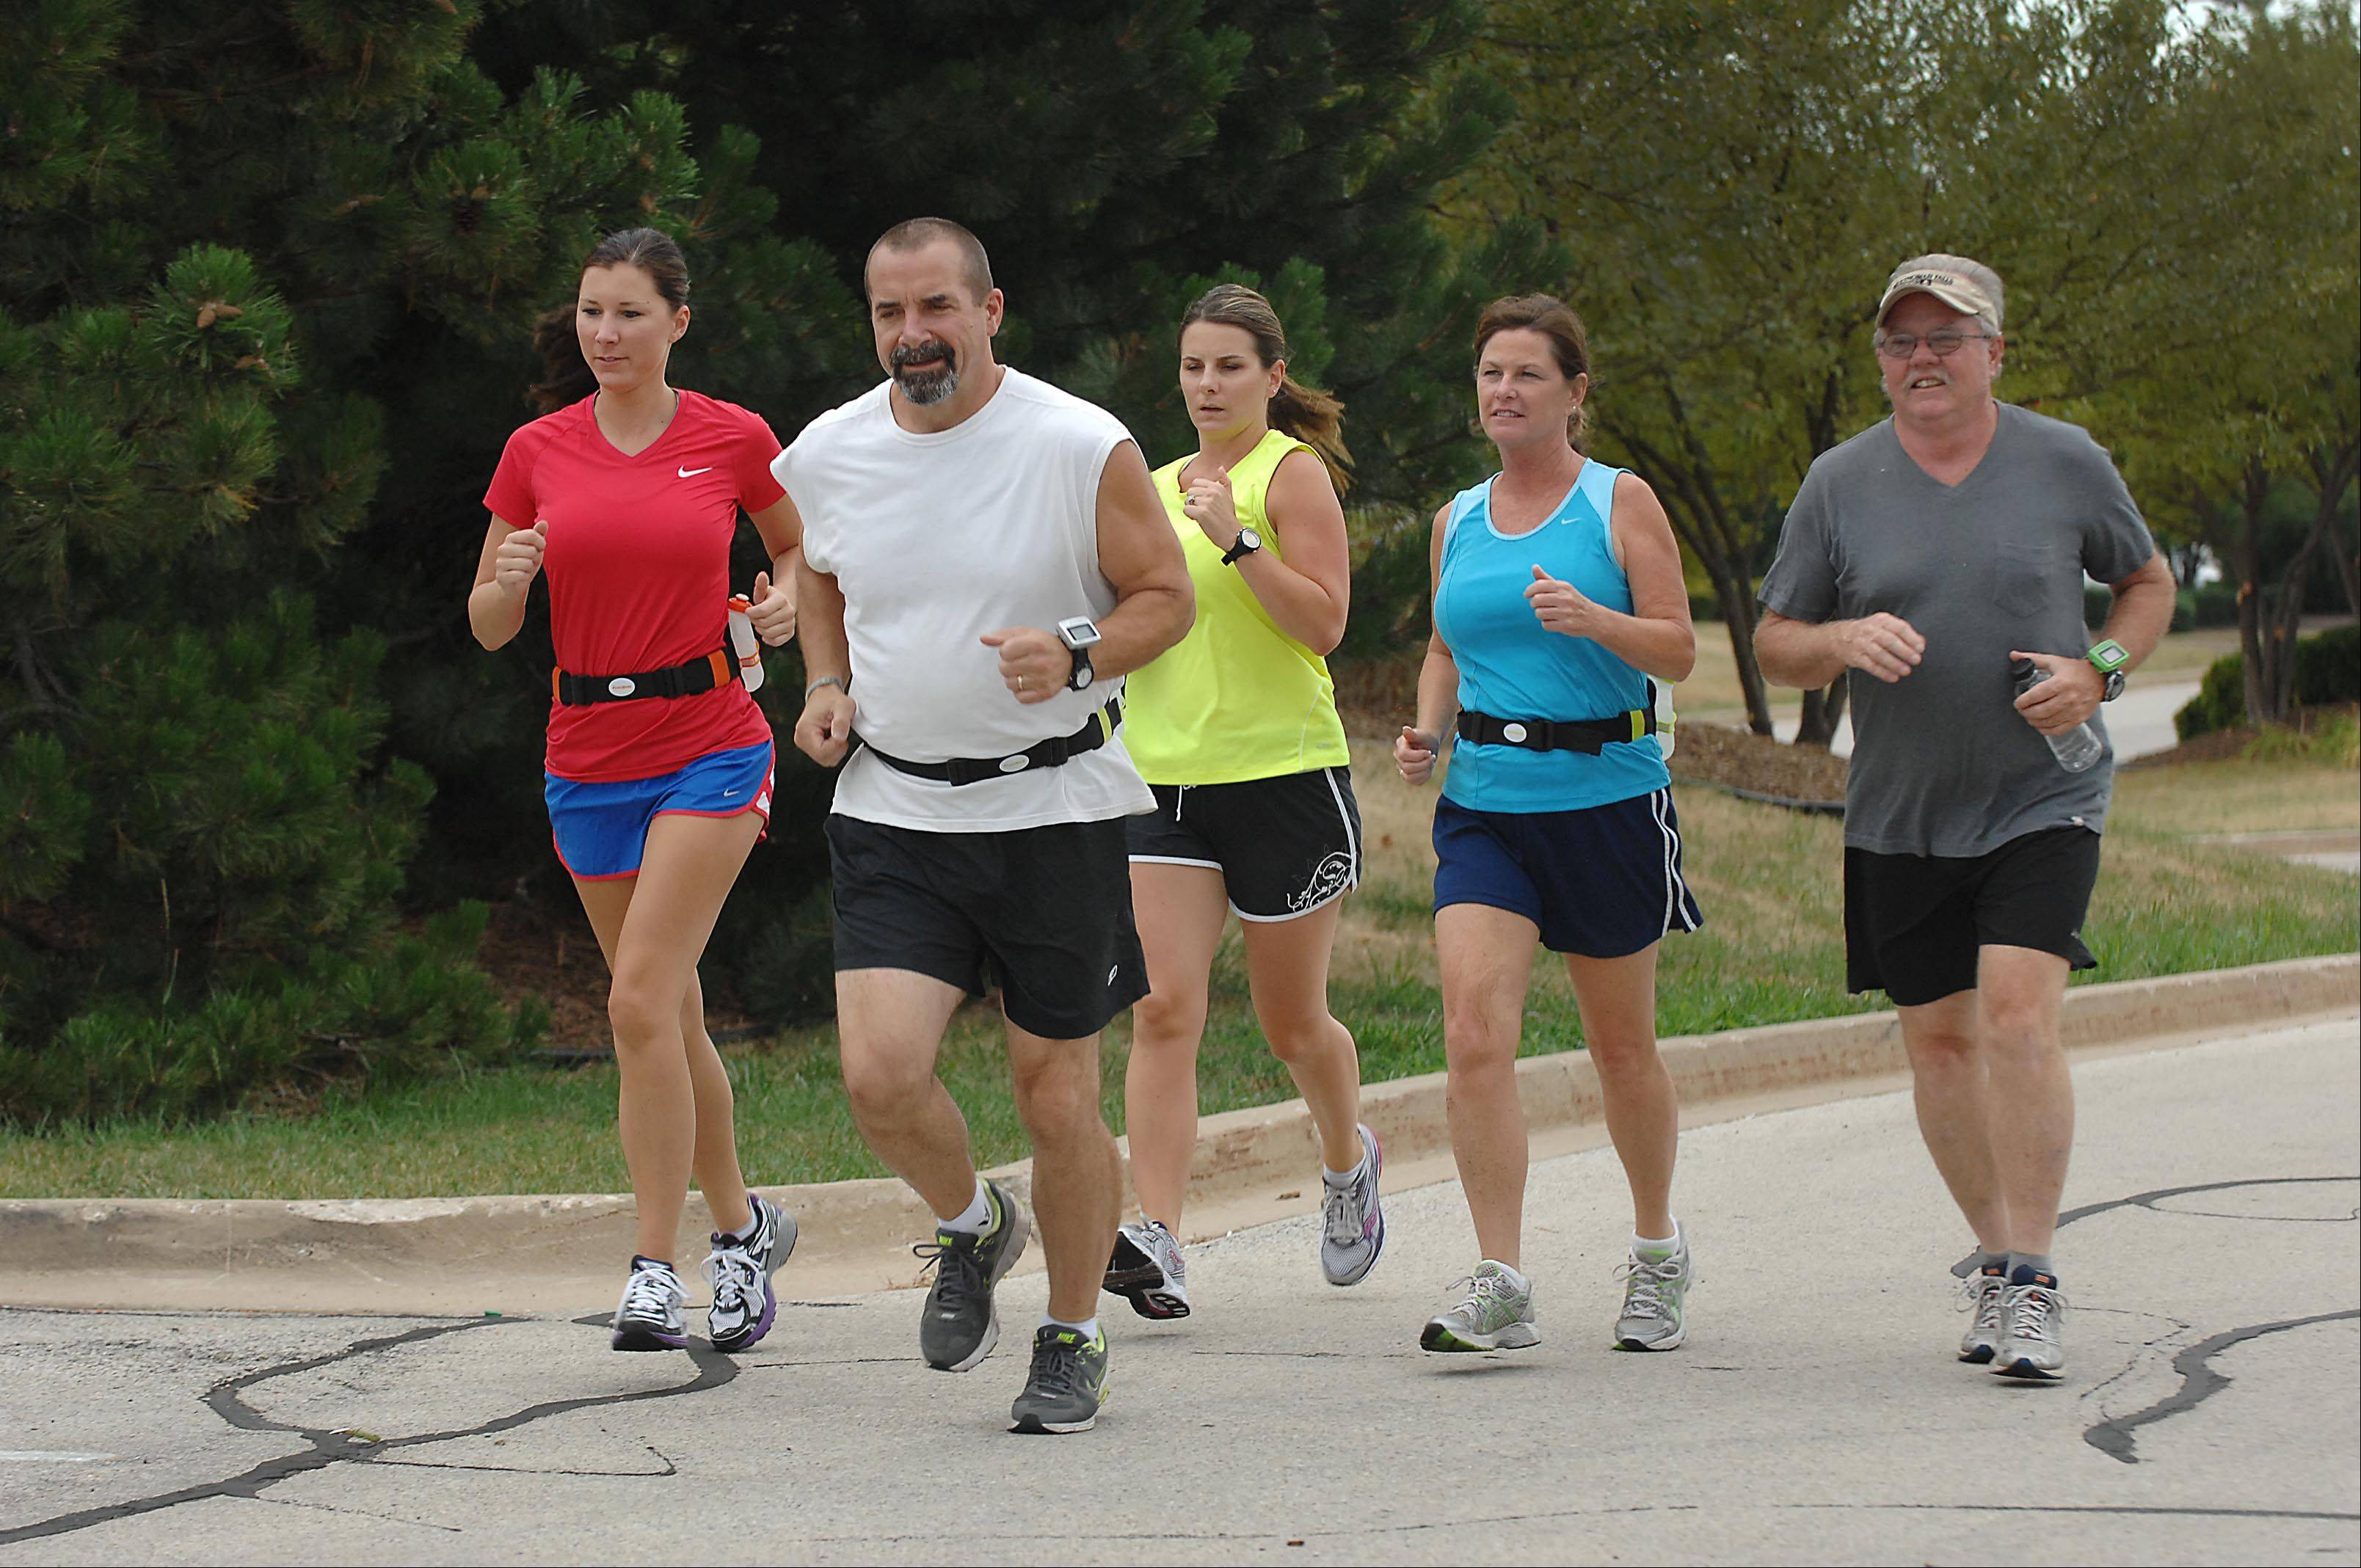 The Shlub Club, a group of runners that meets at Dick Pond Athletics in Carpentersville, runs together near the store weekly. From left are Nicole Kotelman, Paul Turnbaugh, Carolyn Chesta, Donna Hayes, and Joe Maney.